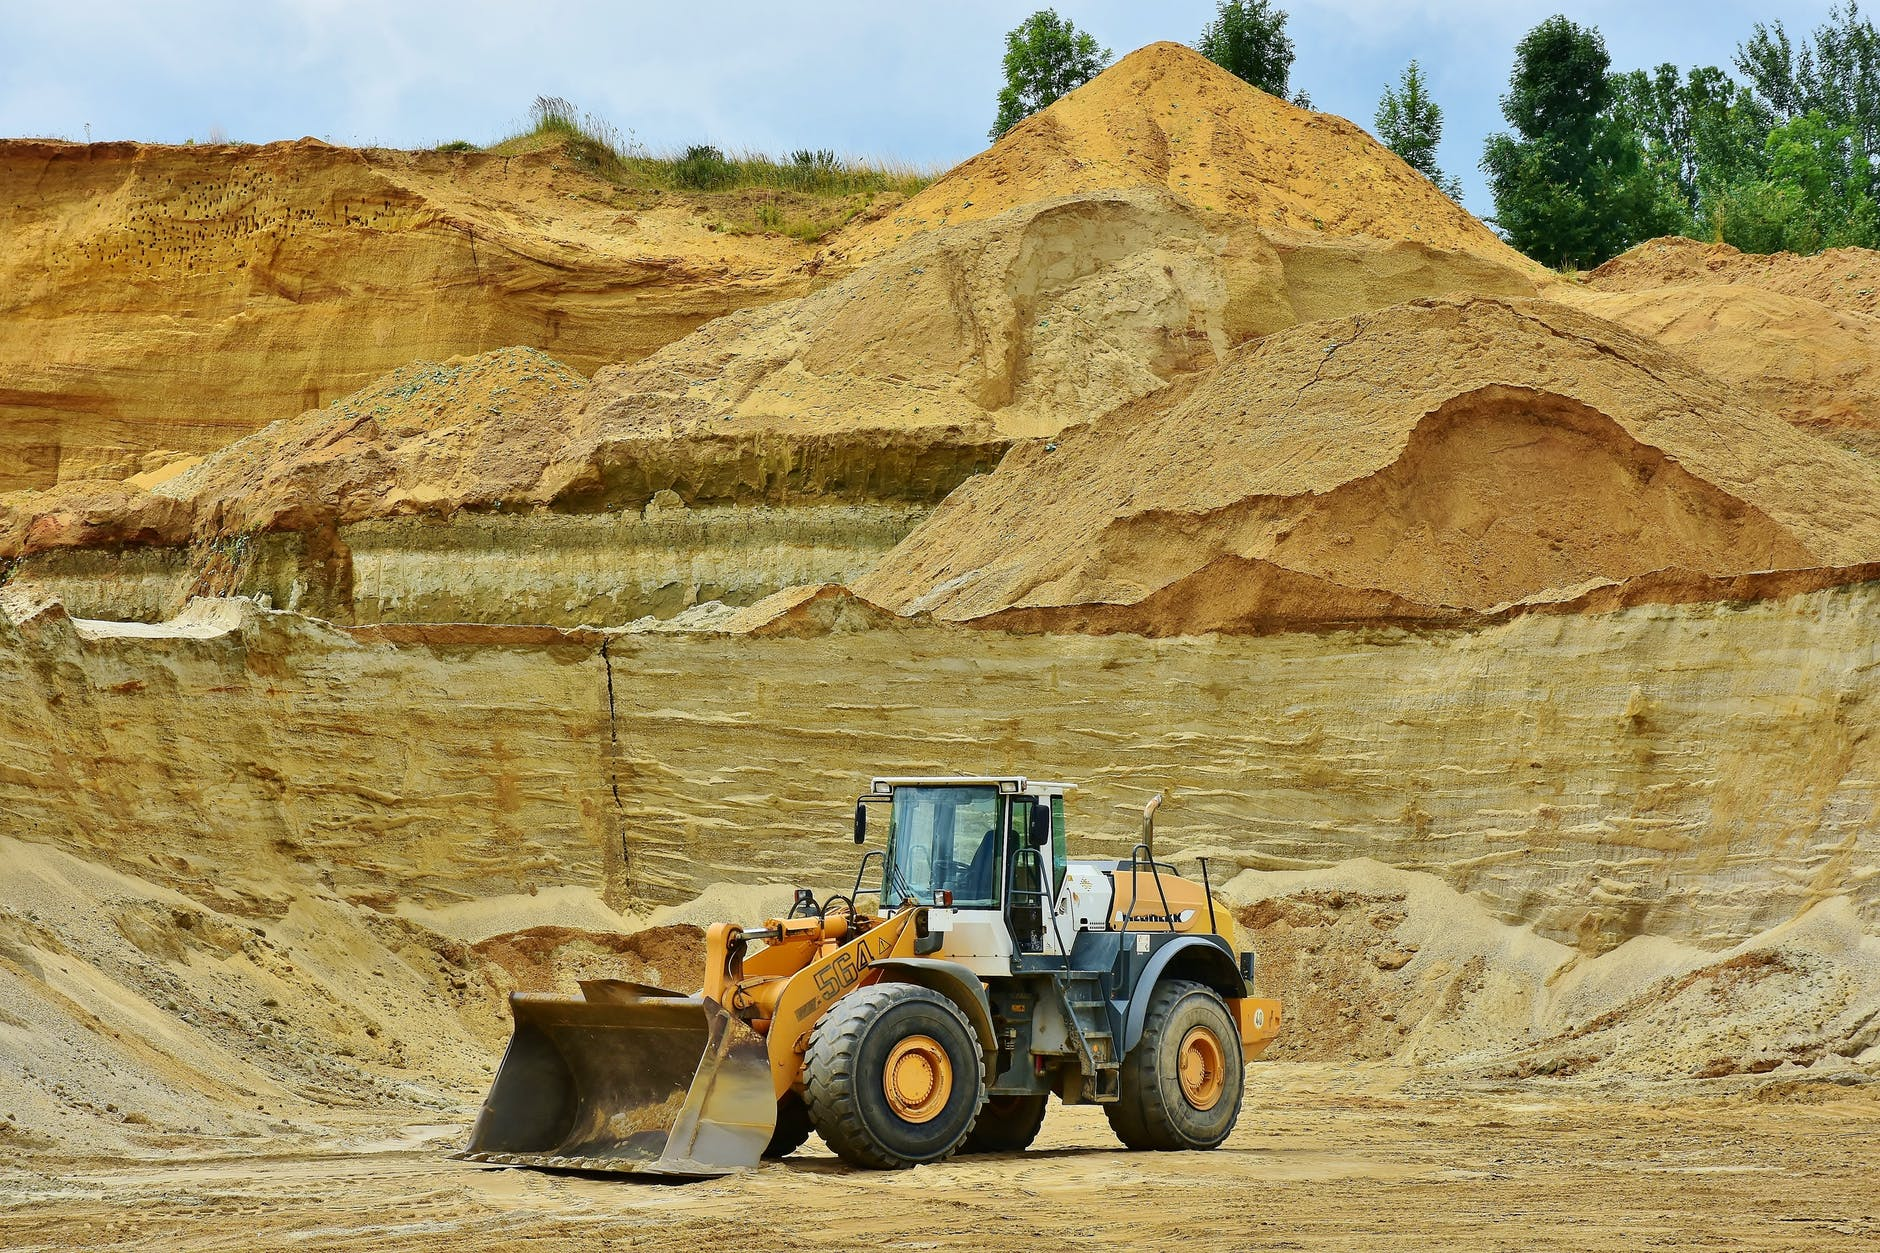 PELATIHAN SUPPLY CHAIN MANAGEMENT (SCM) FOR MINING AND OIL & GAS INDUSTRY